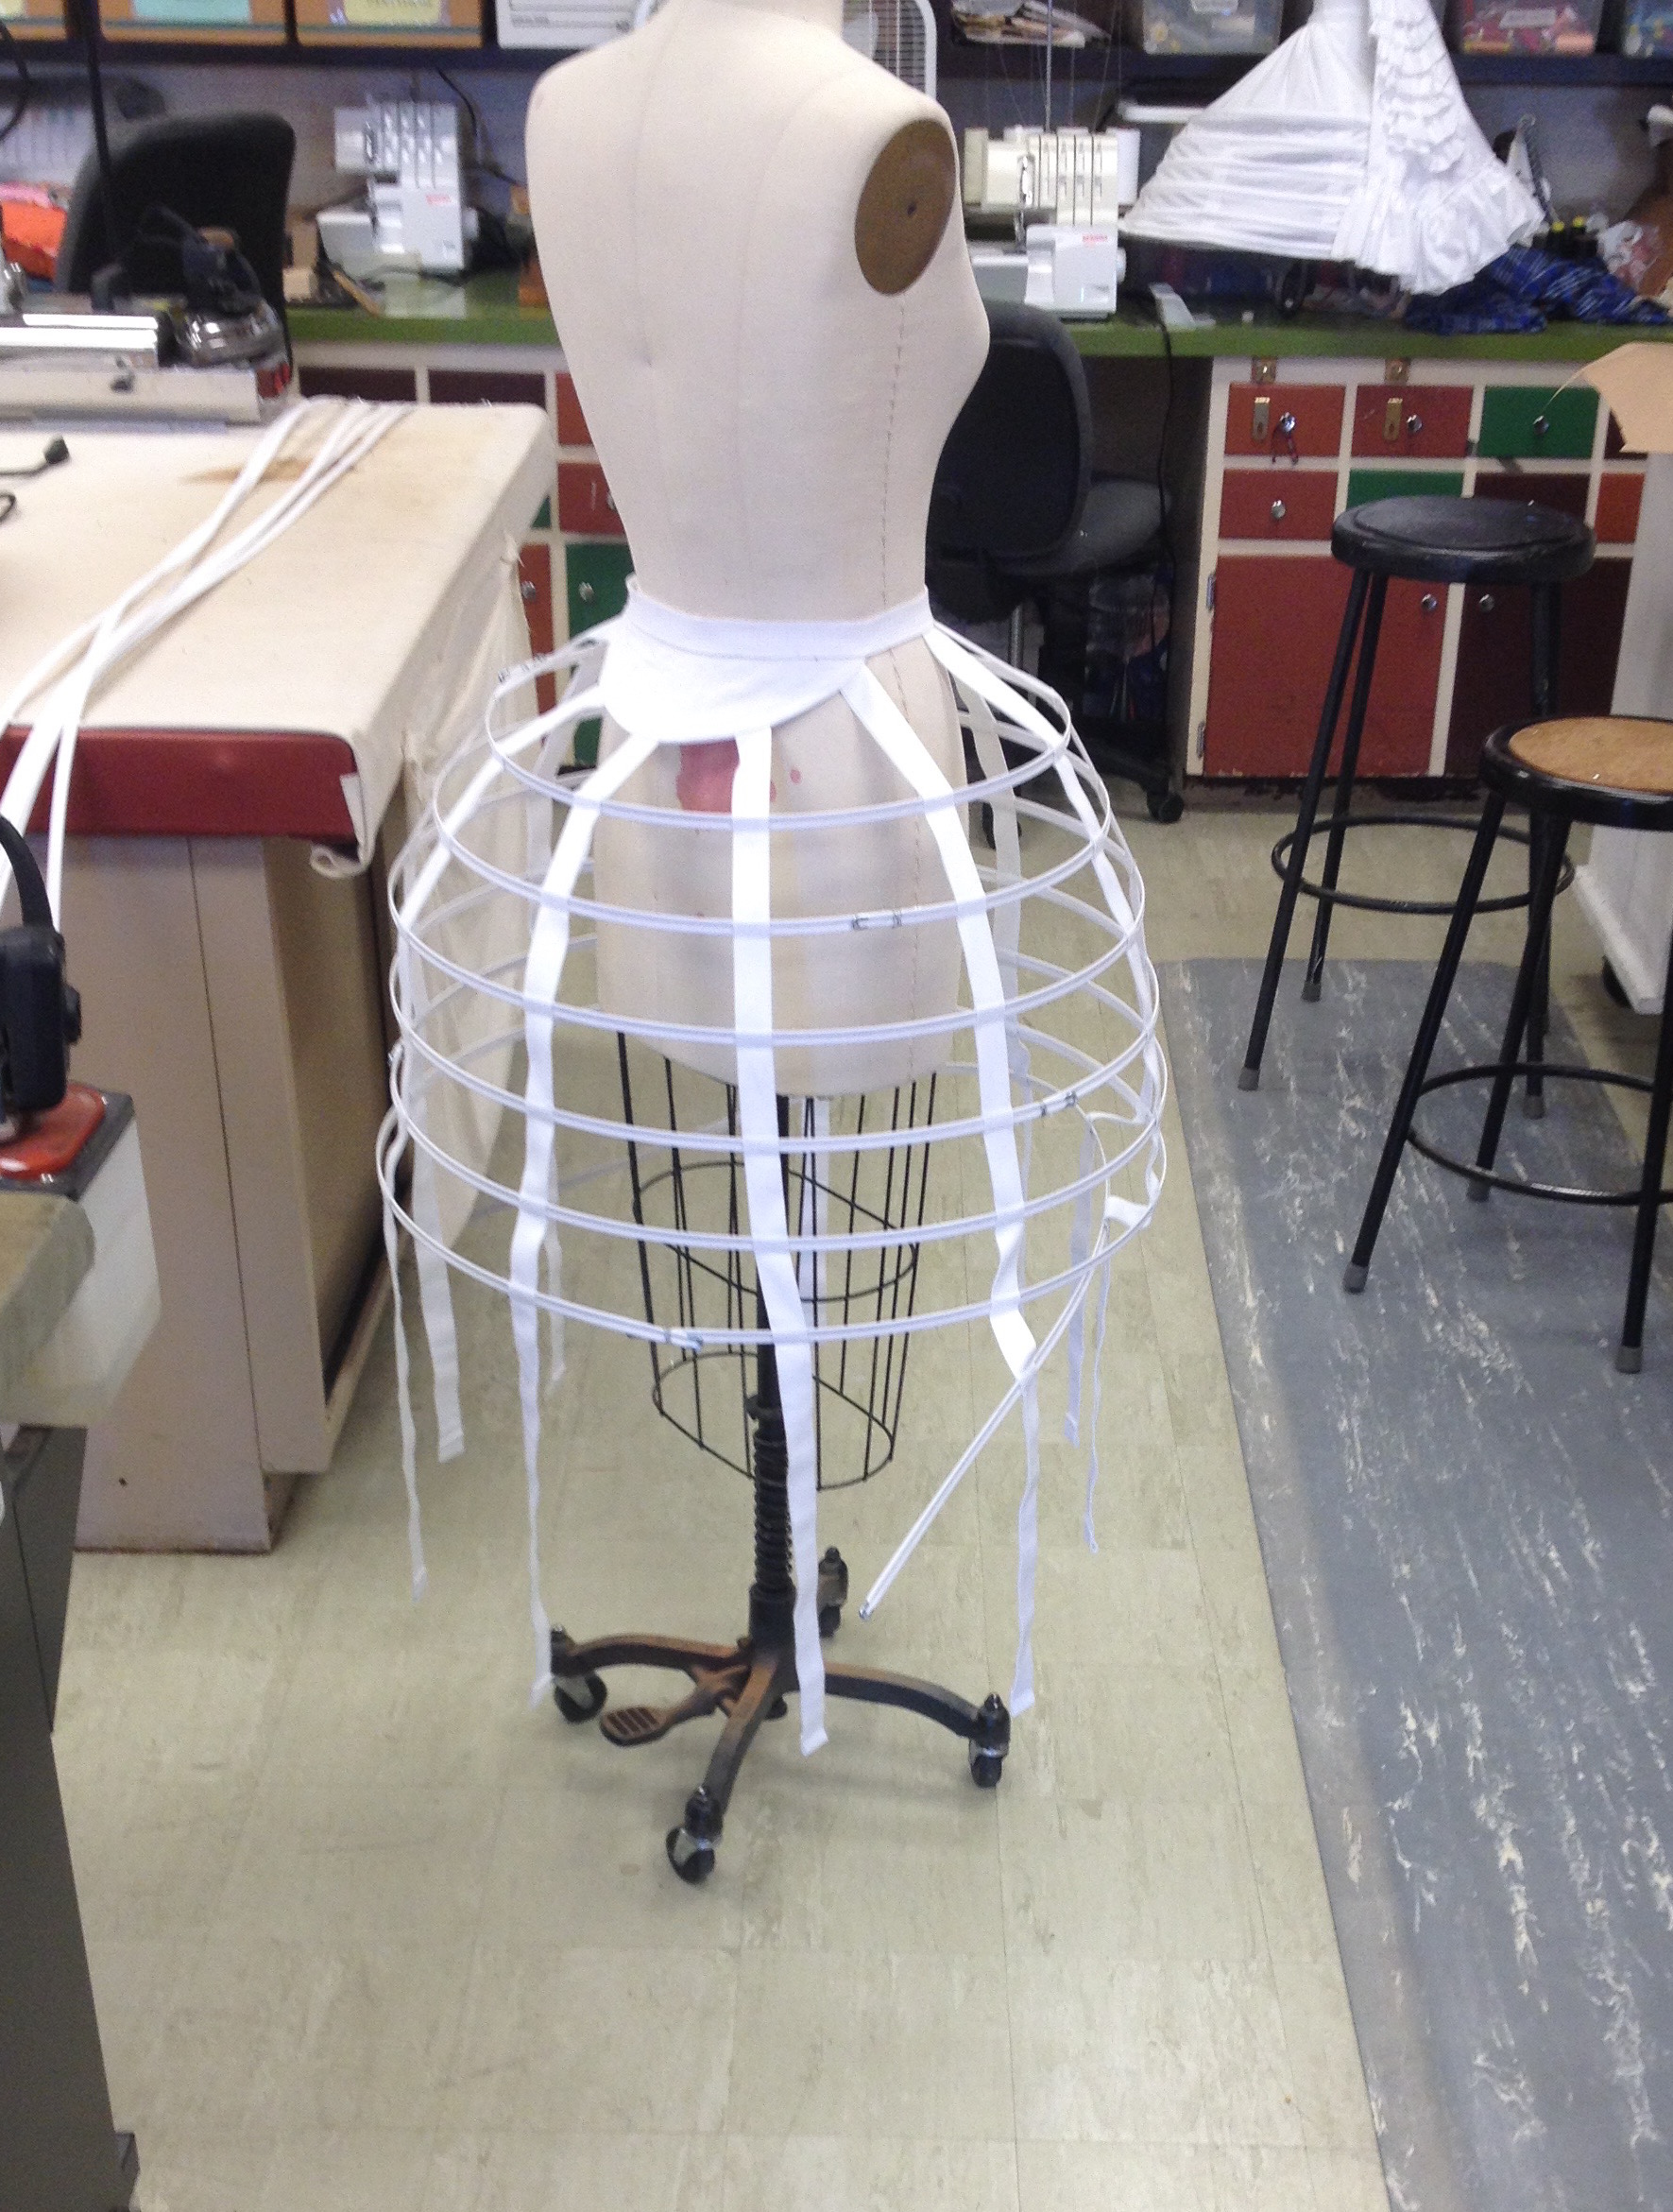 Crinoline in process